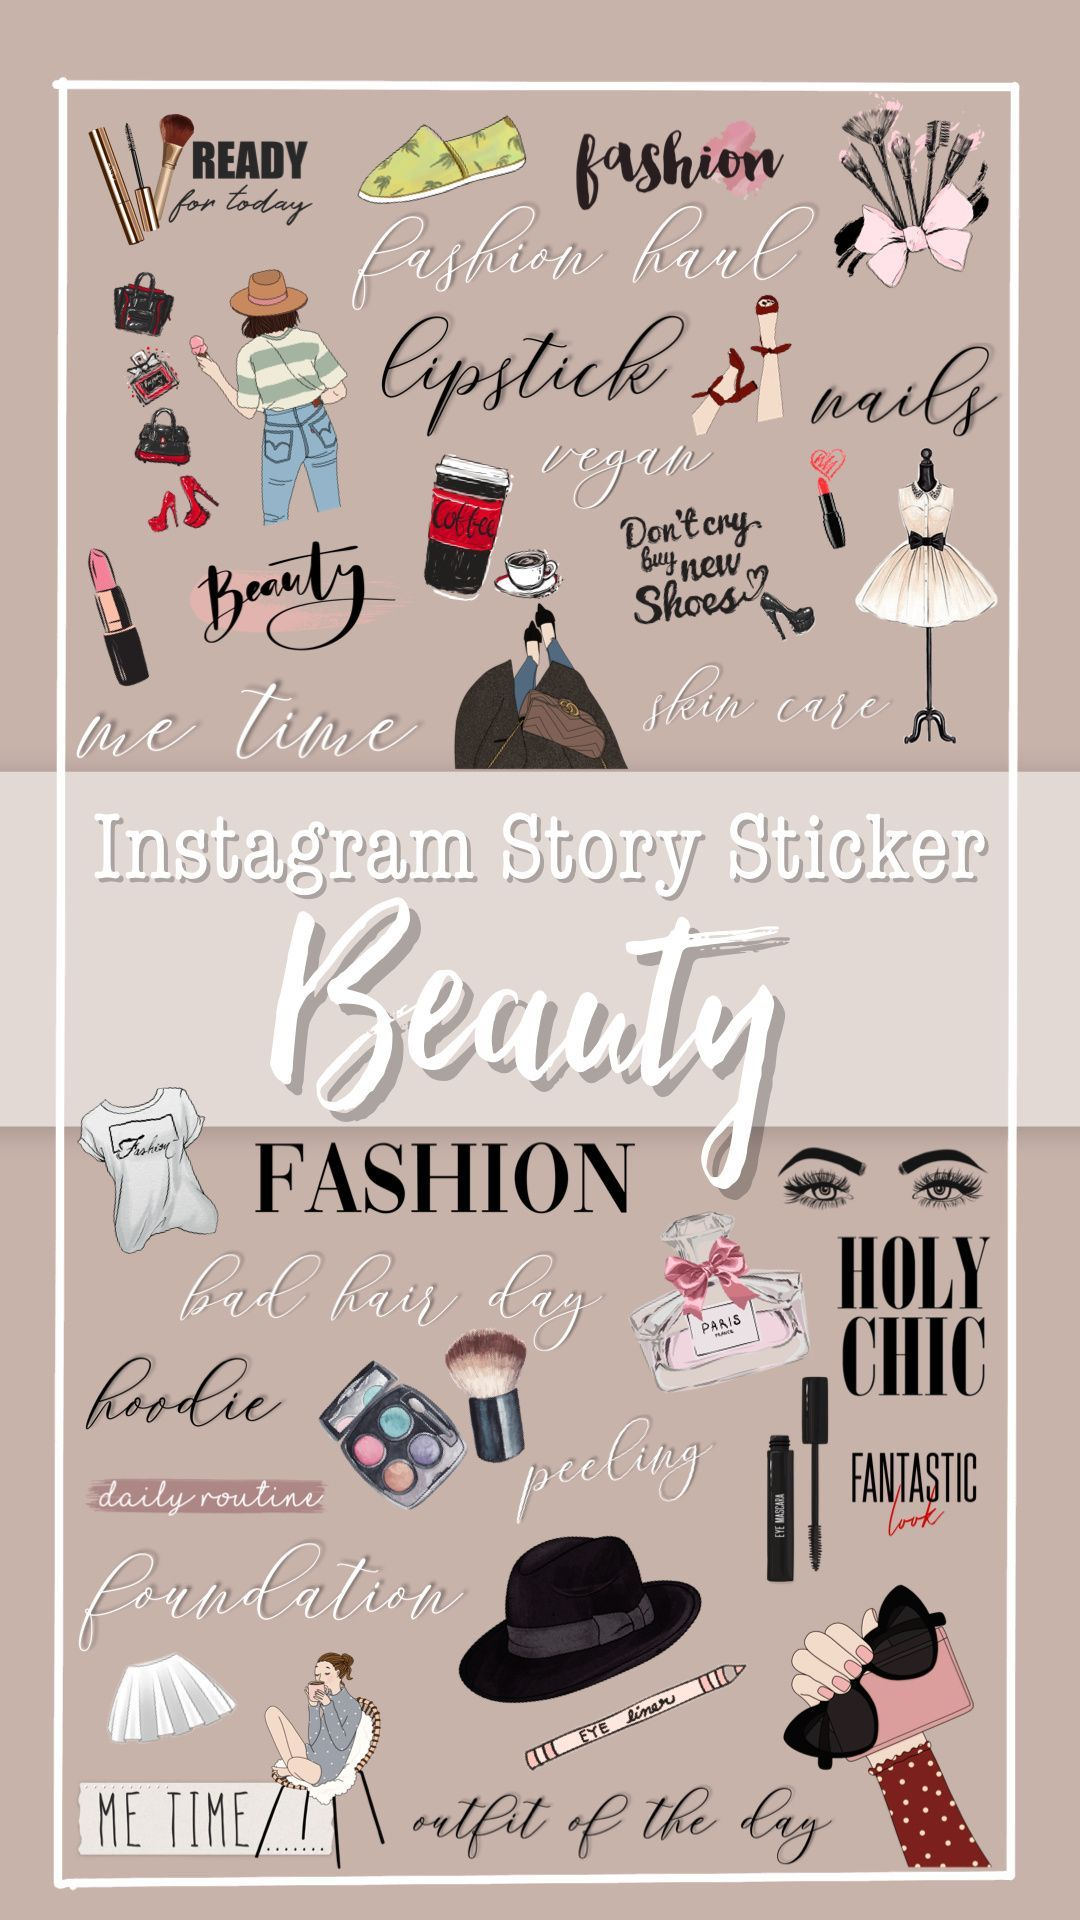 120 Instagram Story Stickers Beauty Bundle Beauty Makeup Lifestyle Stickers Everyday Design Elements Instant Download Instagram Story Stickers Instagram Story Sticker Instagram Story